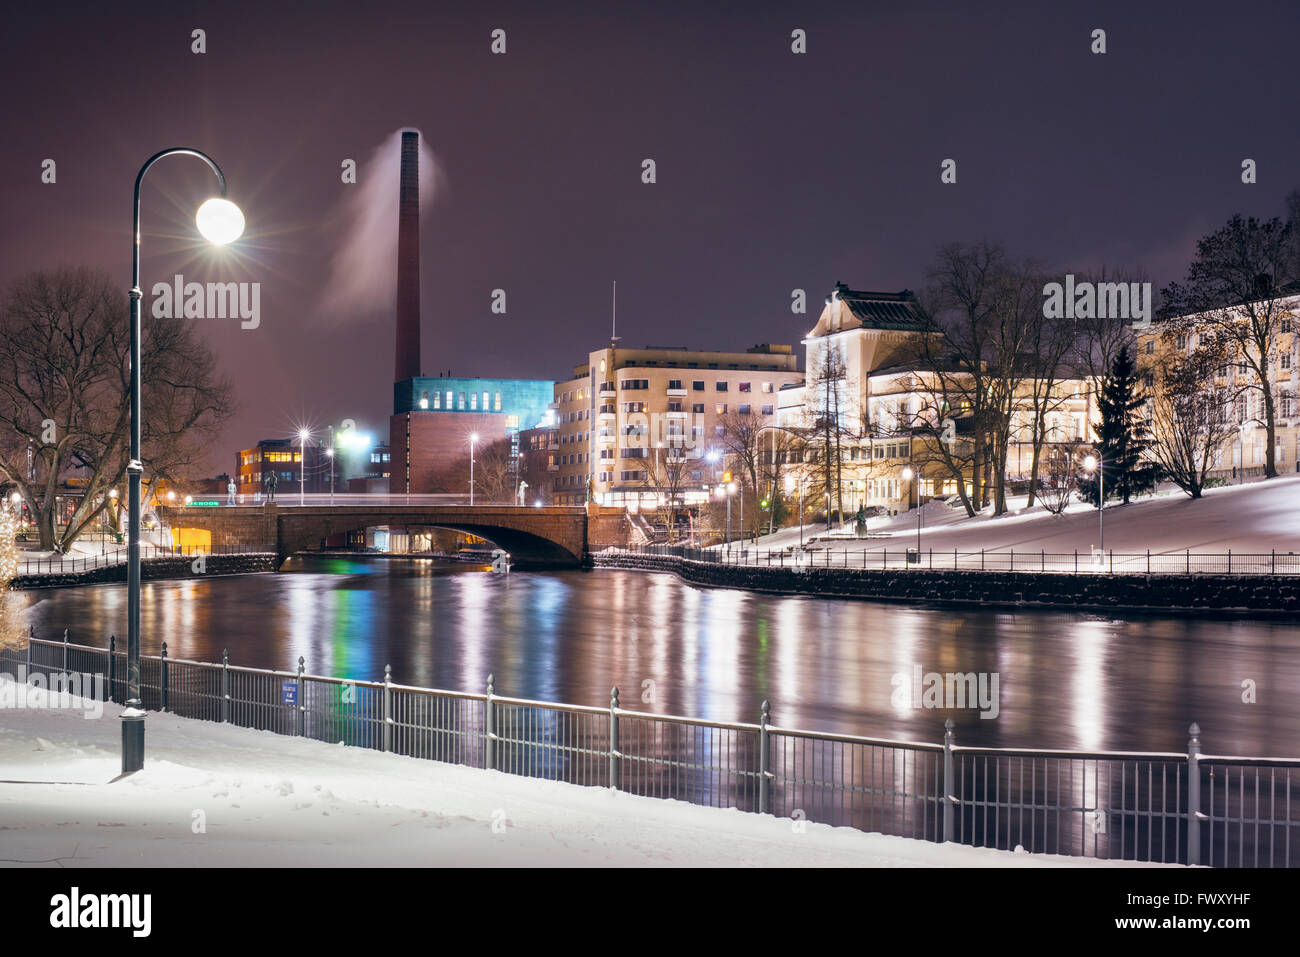 Finland, Pirkanmaa, Tampere, Winter urban scene with riverbank - Stock Image